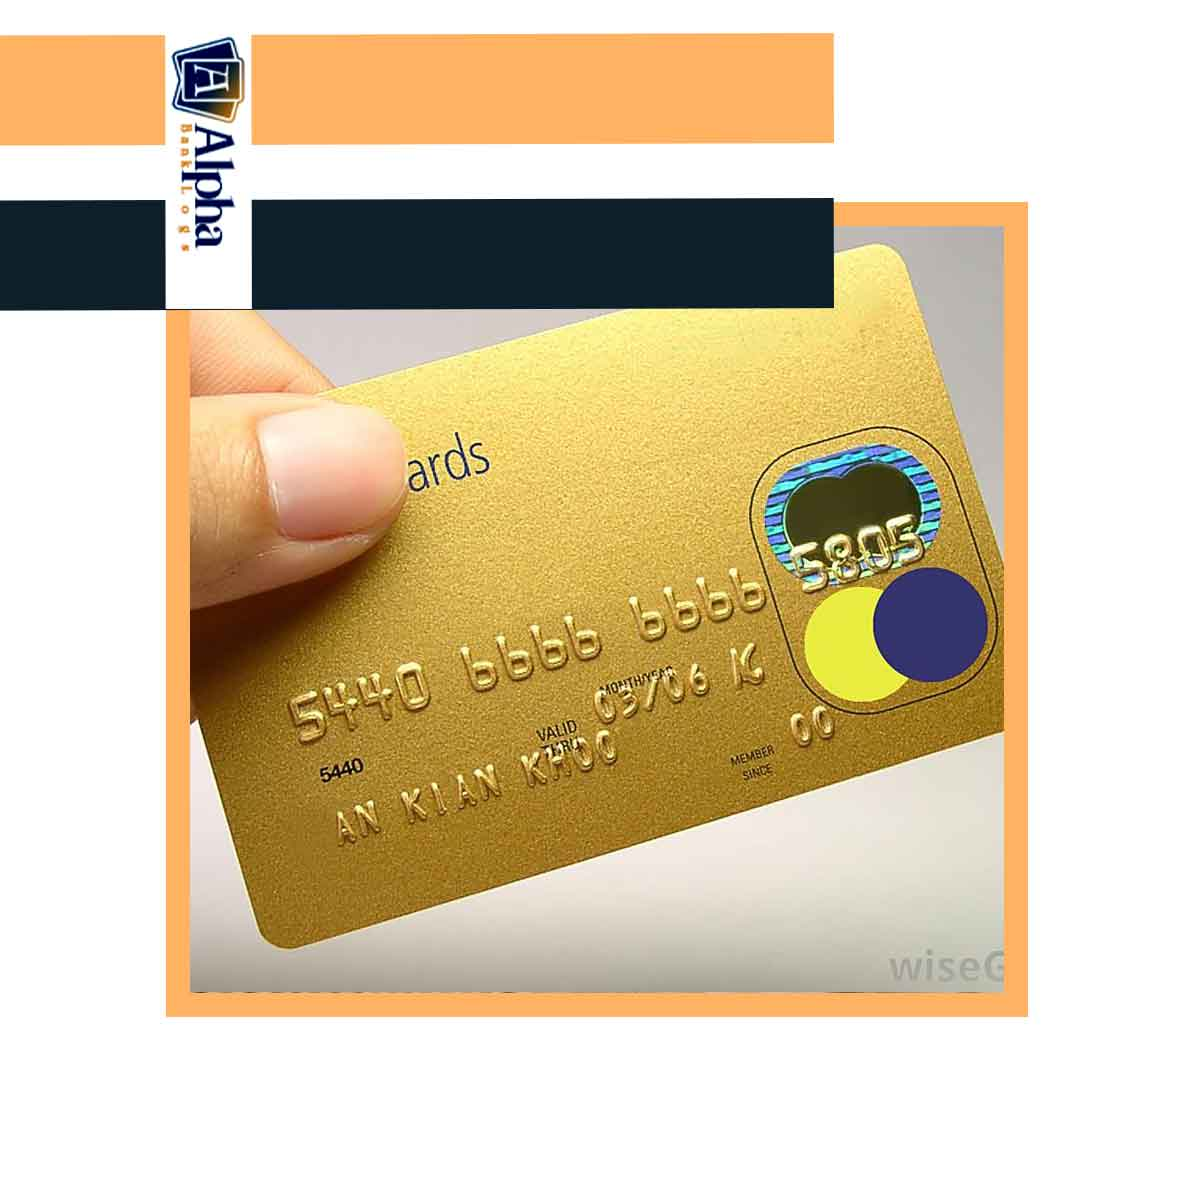 BUY2GET1FREE WORLD ELITE USA CARDS -BALANCE from $1.000 to $100.000 NON VBV